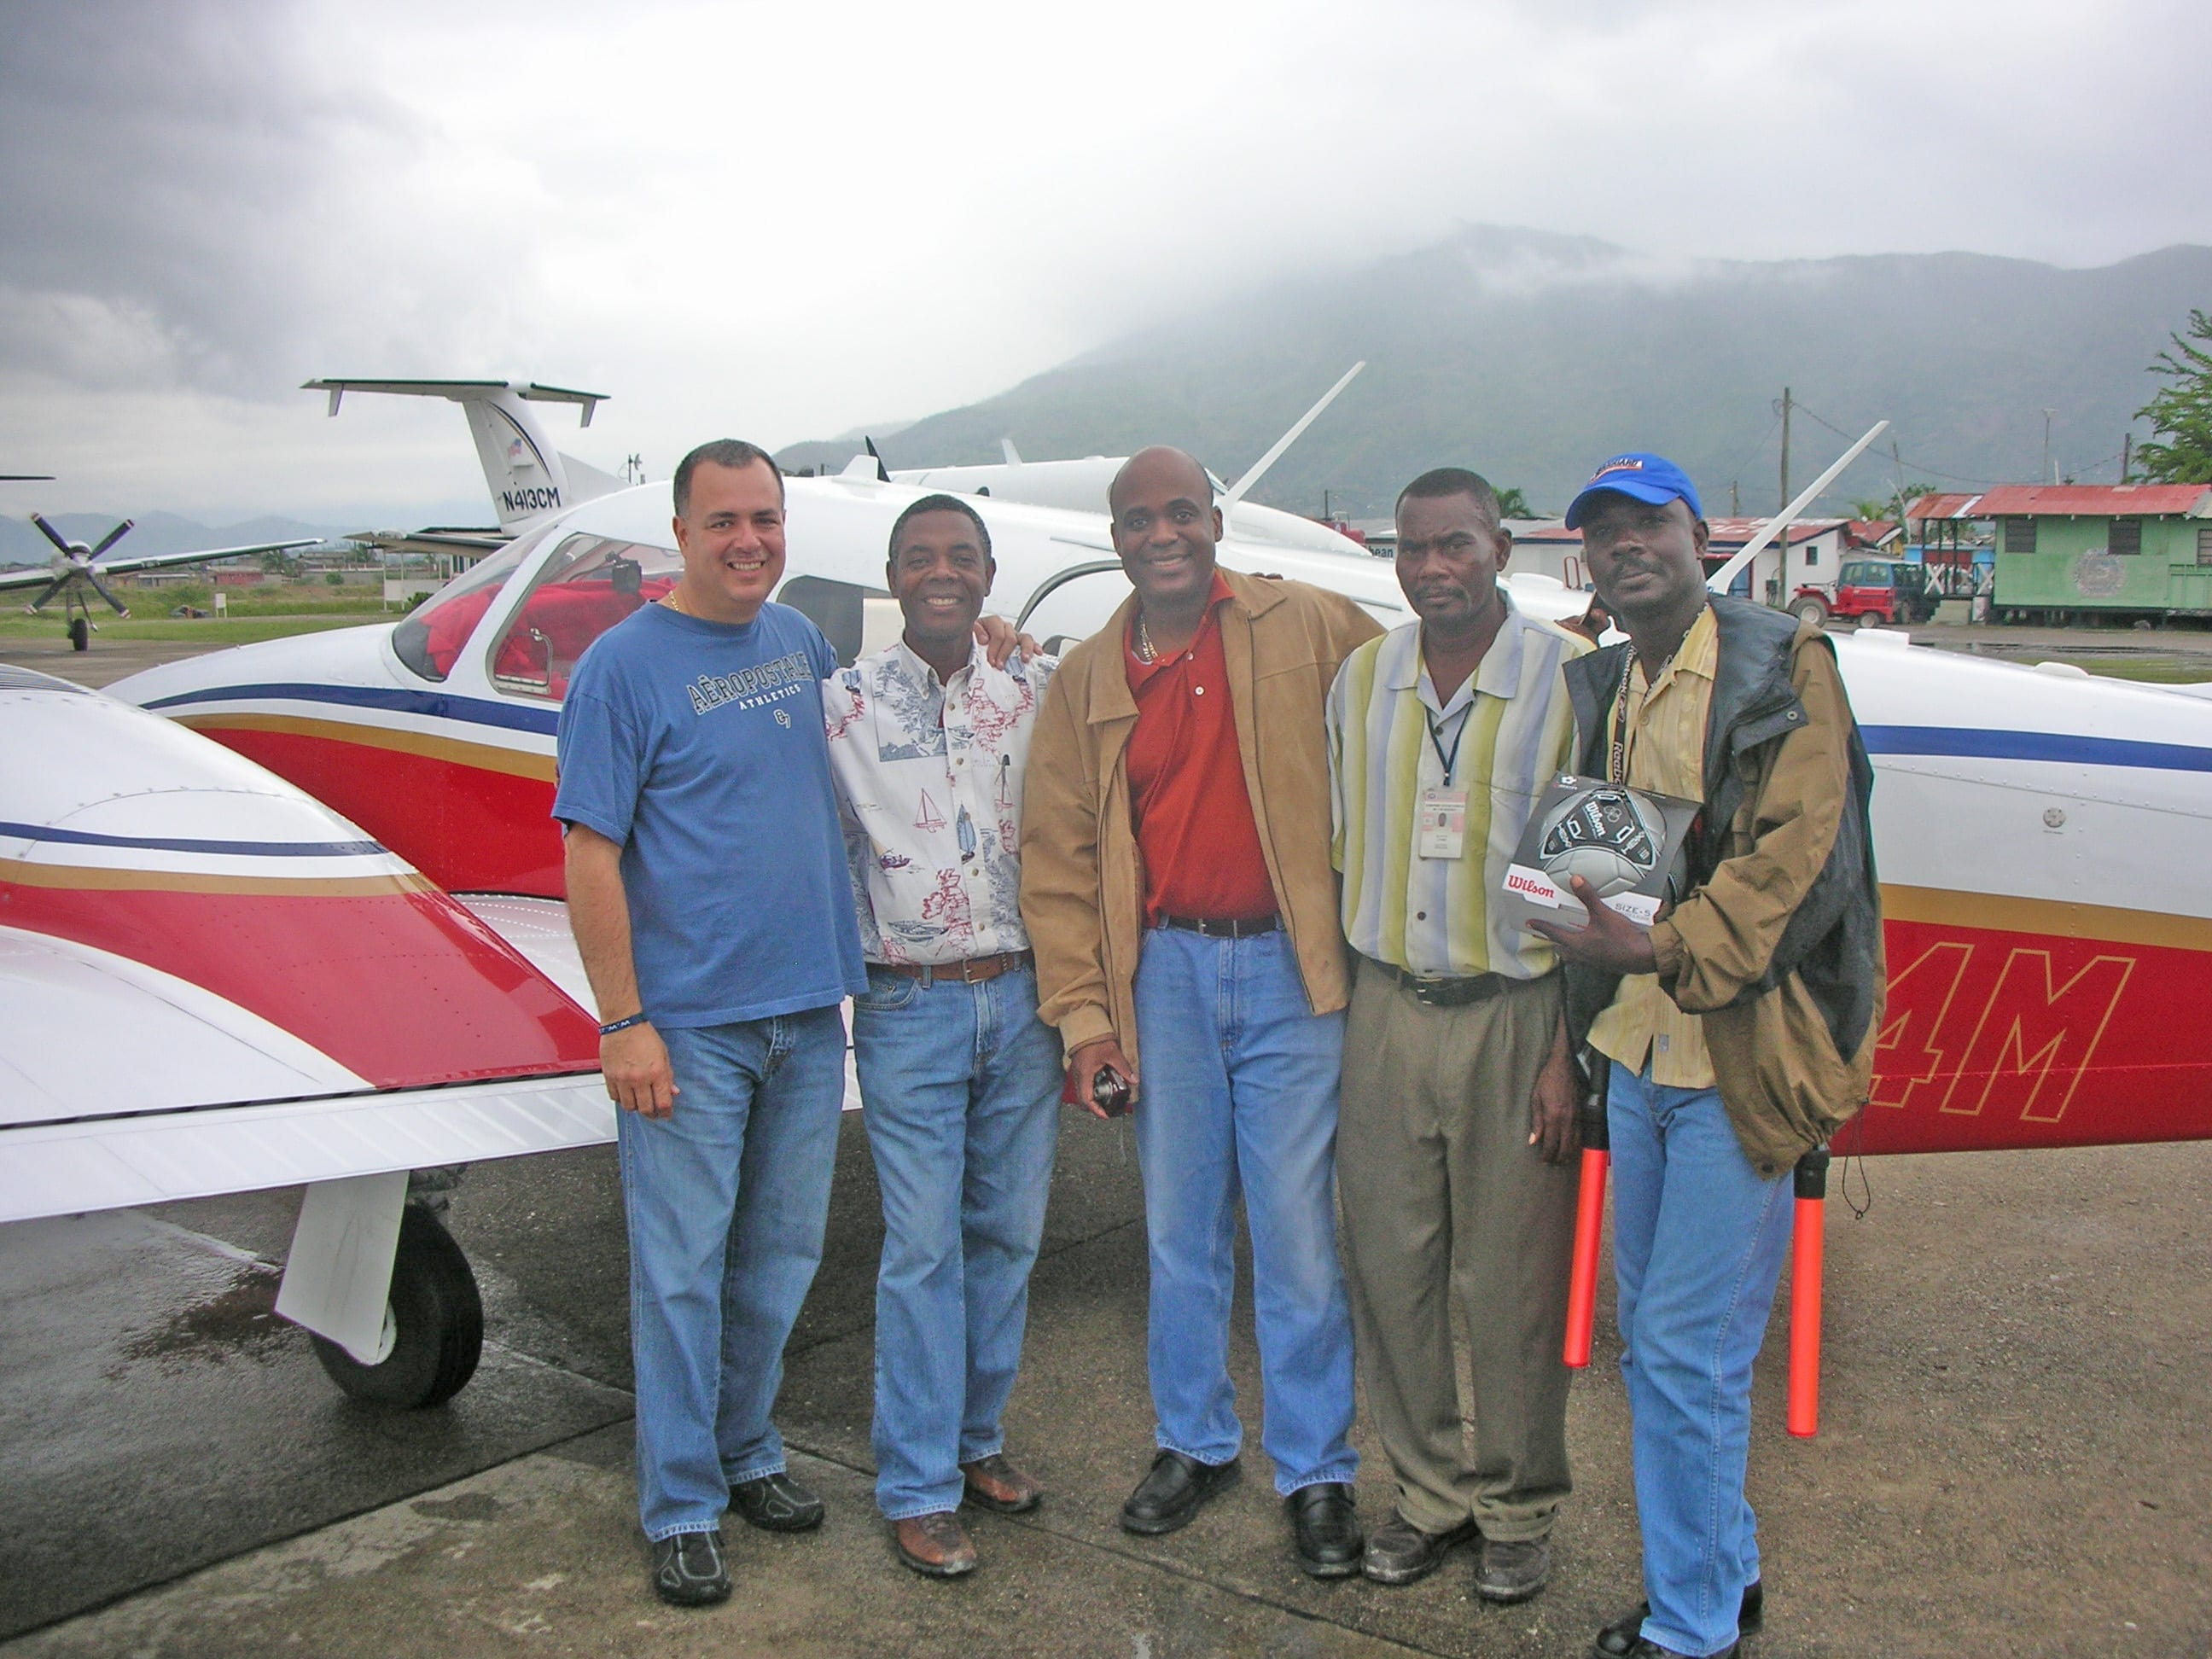 Need continues for Haitian relief